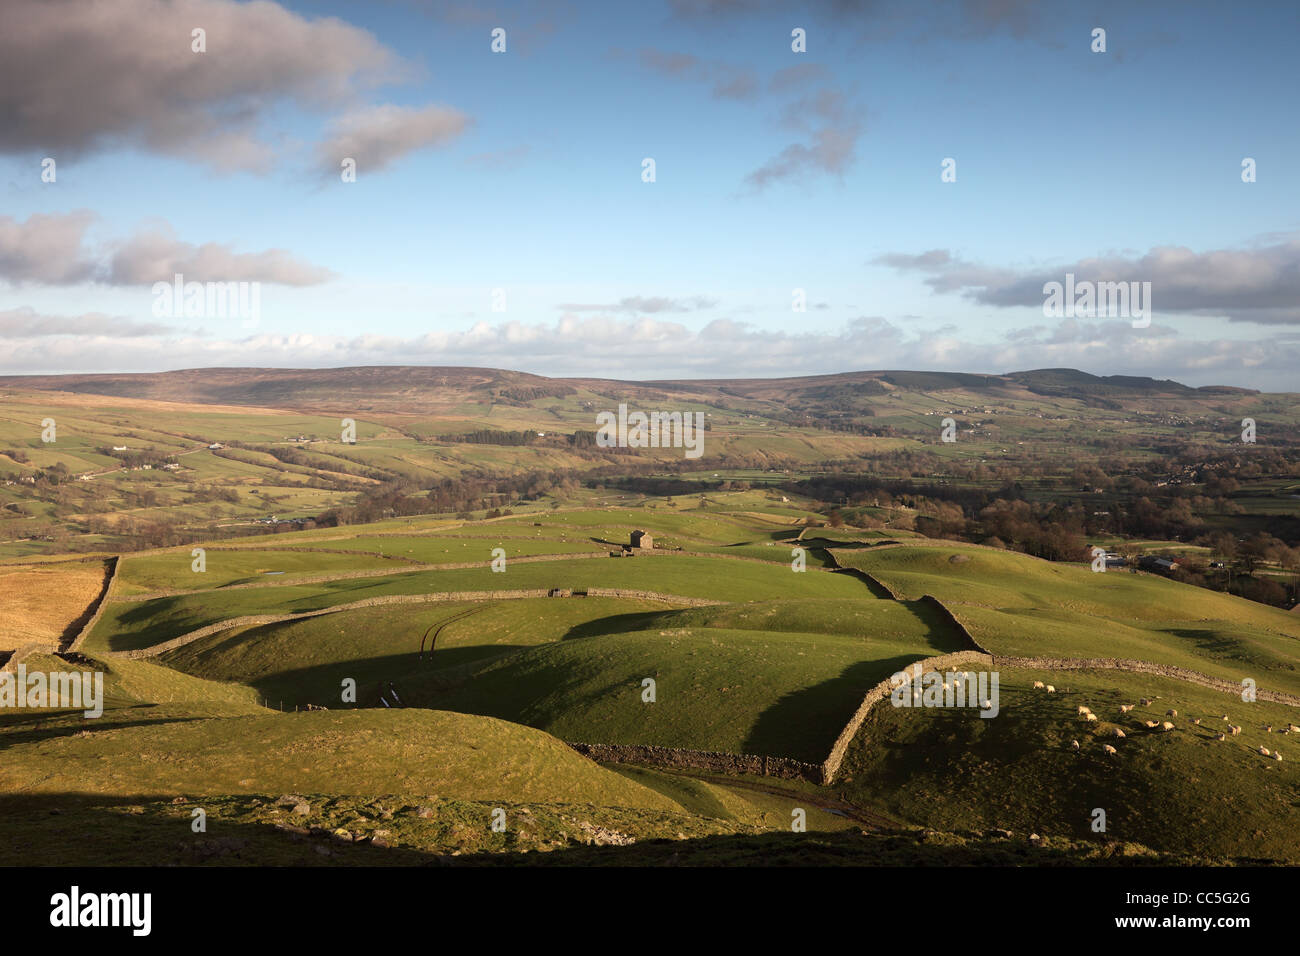 The View from the Ancient Hilltop Tumulus of Kirkcarrion Across the Tees Valley Towards Eggleston Common Teesdale - Stock Image